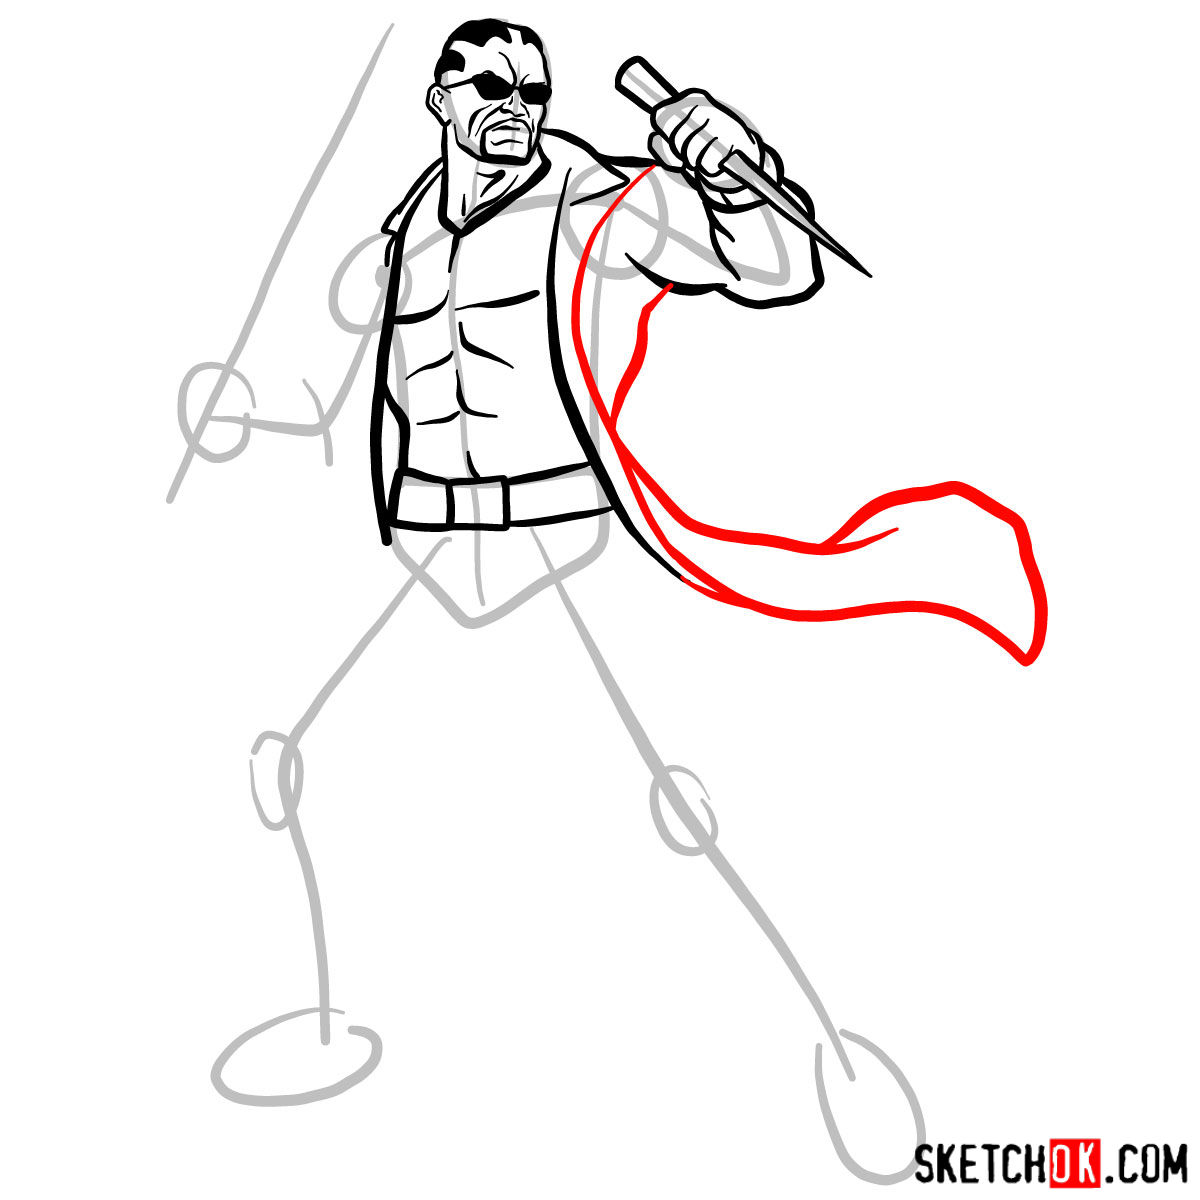 How to draw Blade from Marvel Comics - step 10